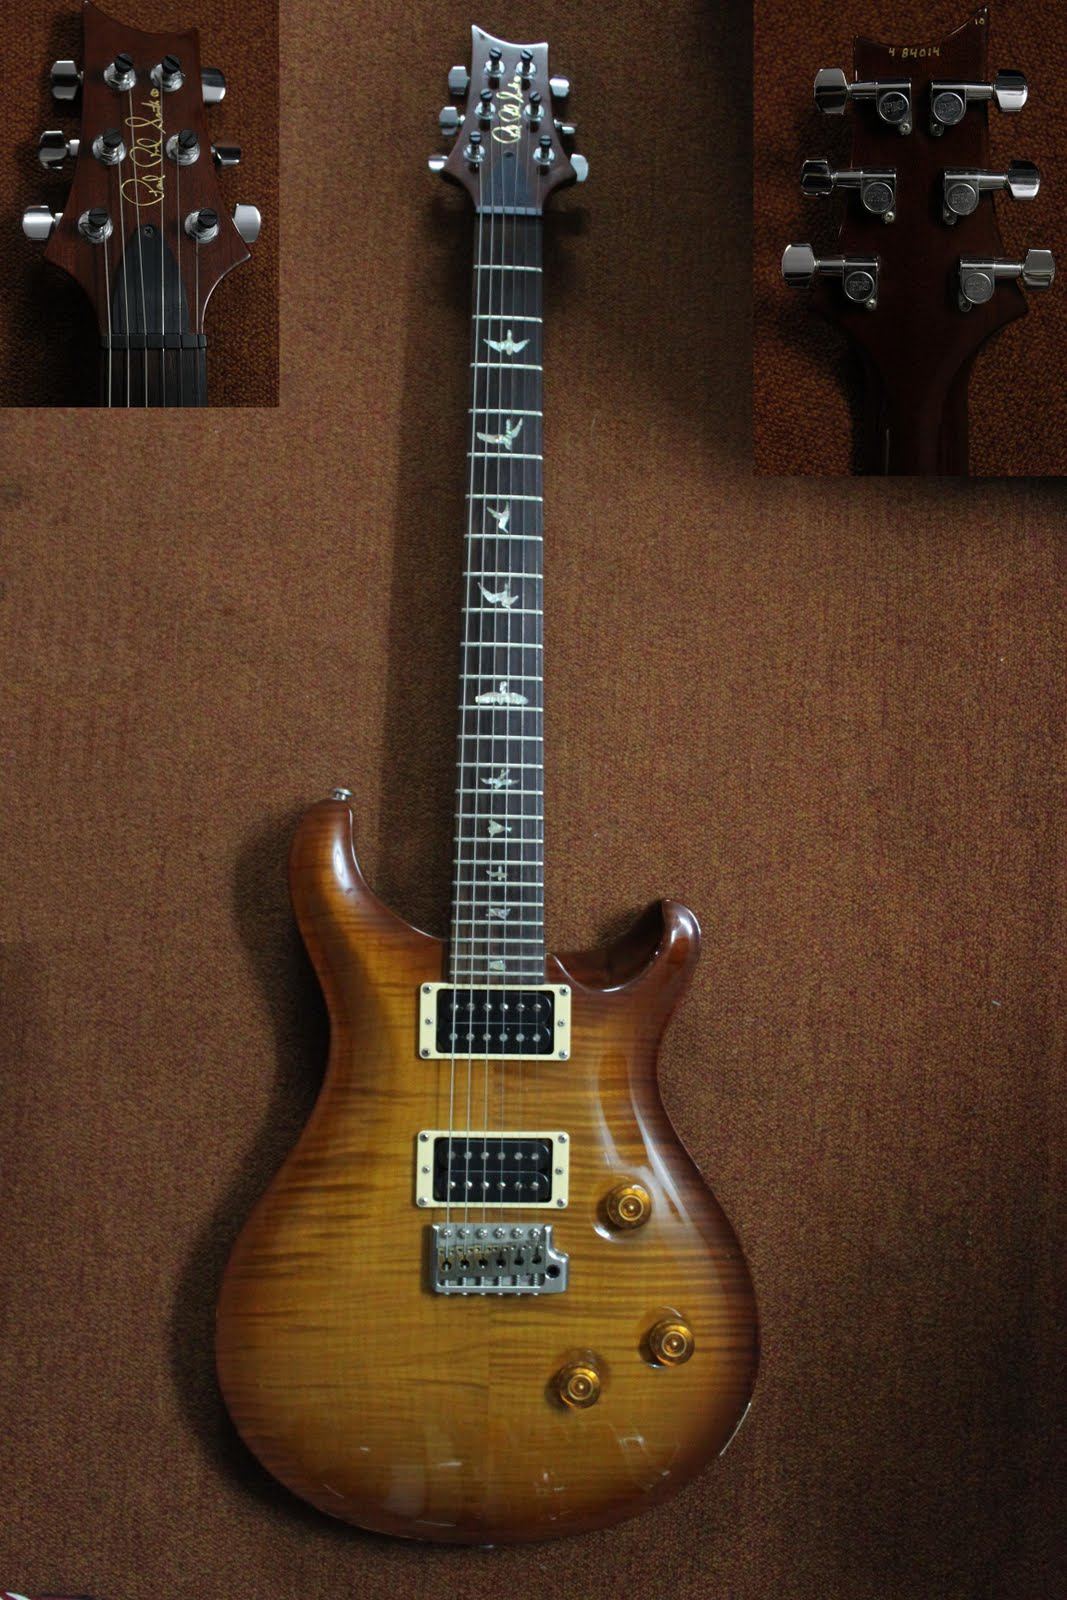 prs hfs wiring diagram ce tech cat6 jack dragon 2 library for paul reed smith guitars trusted 5 way rotary switch